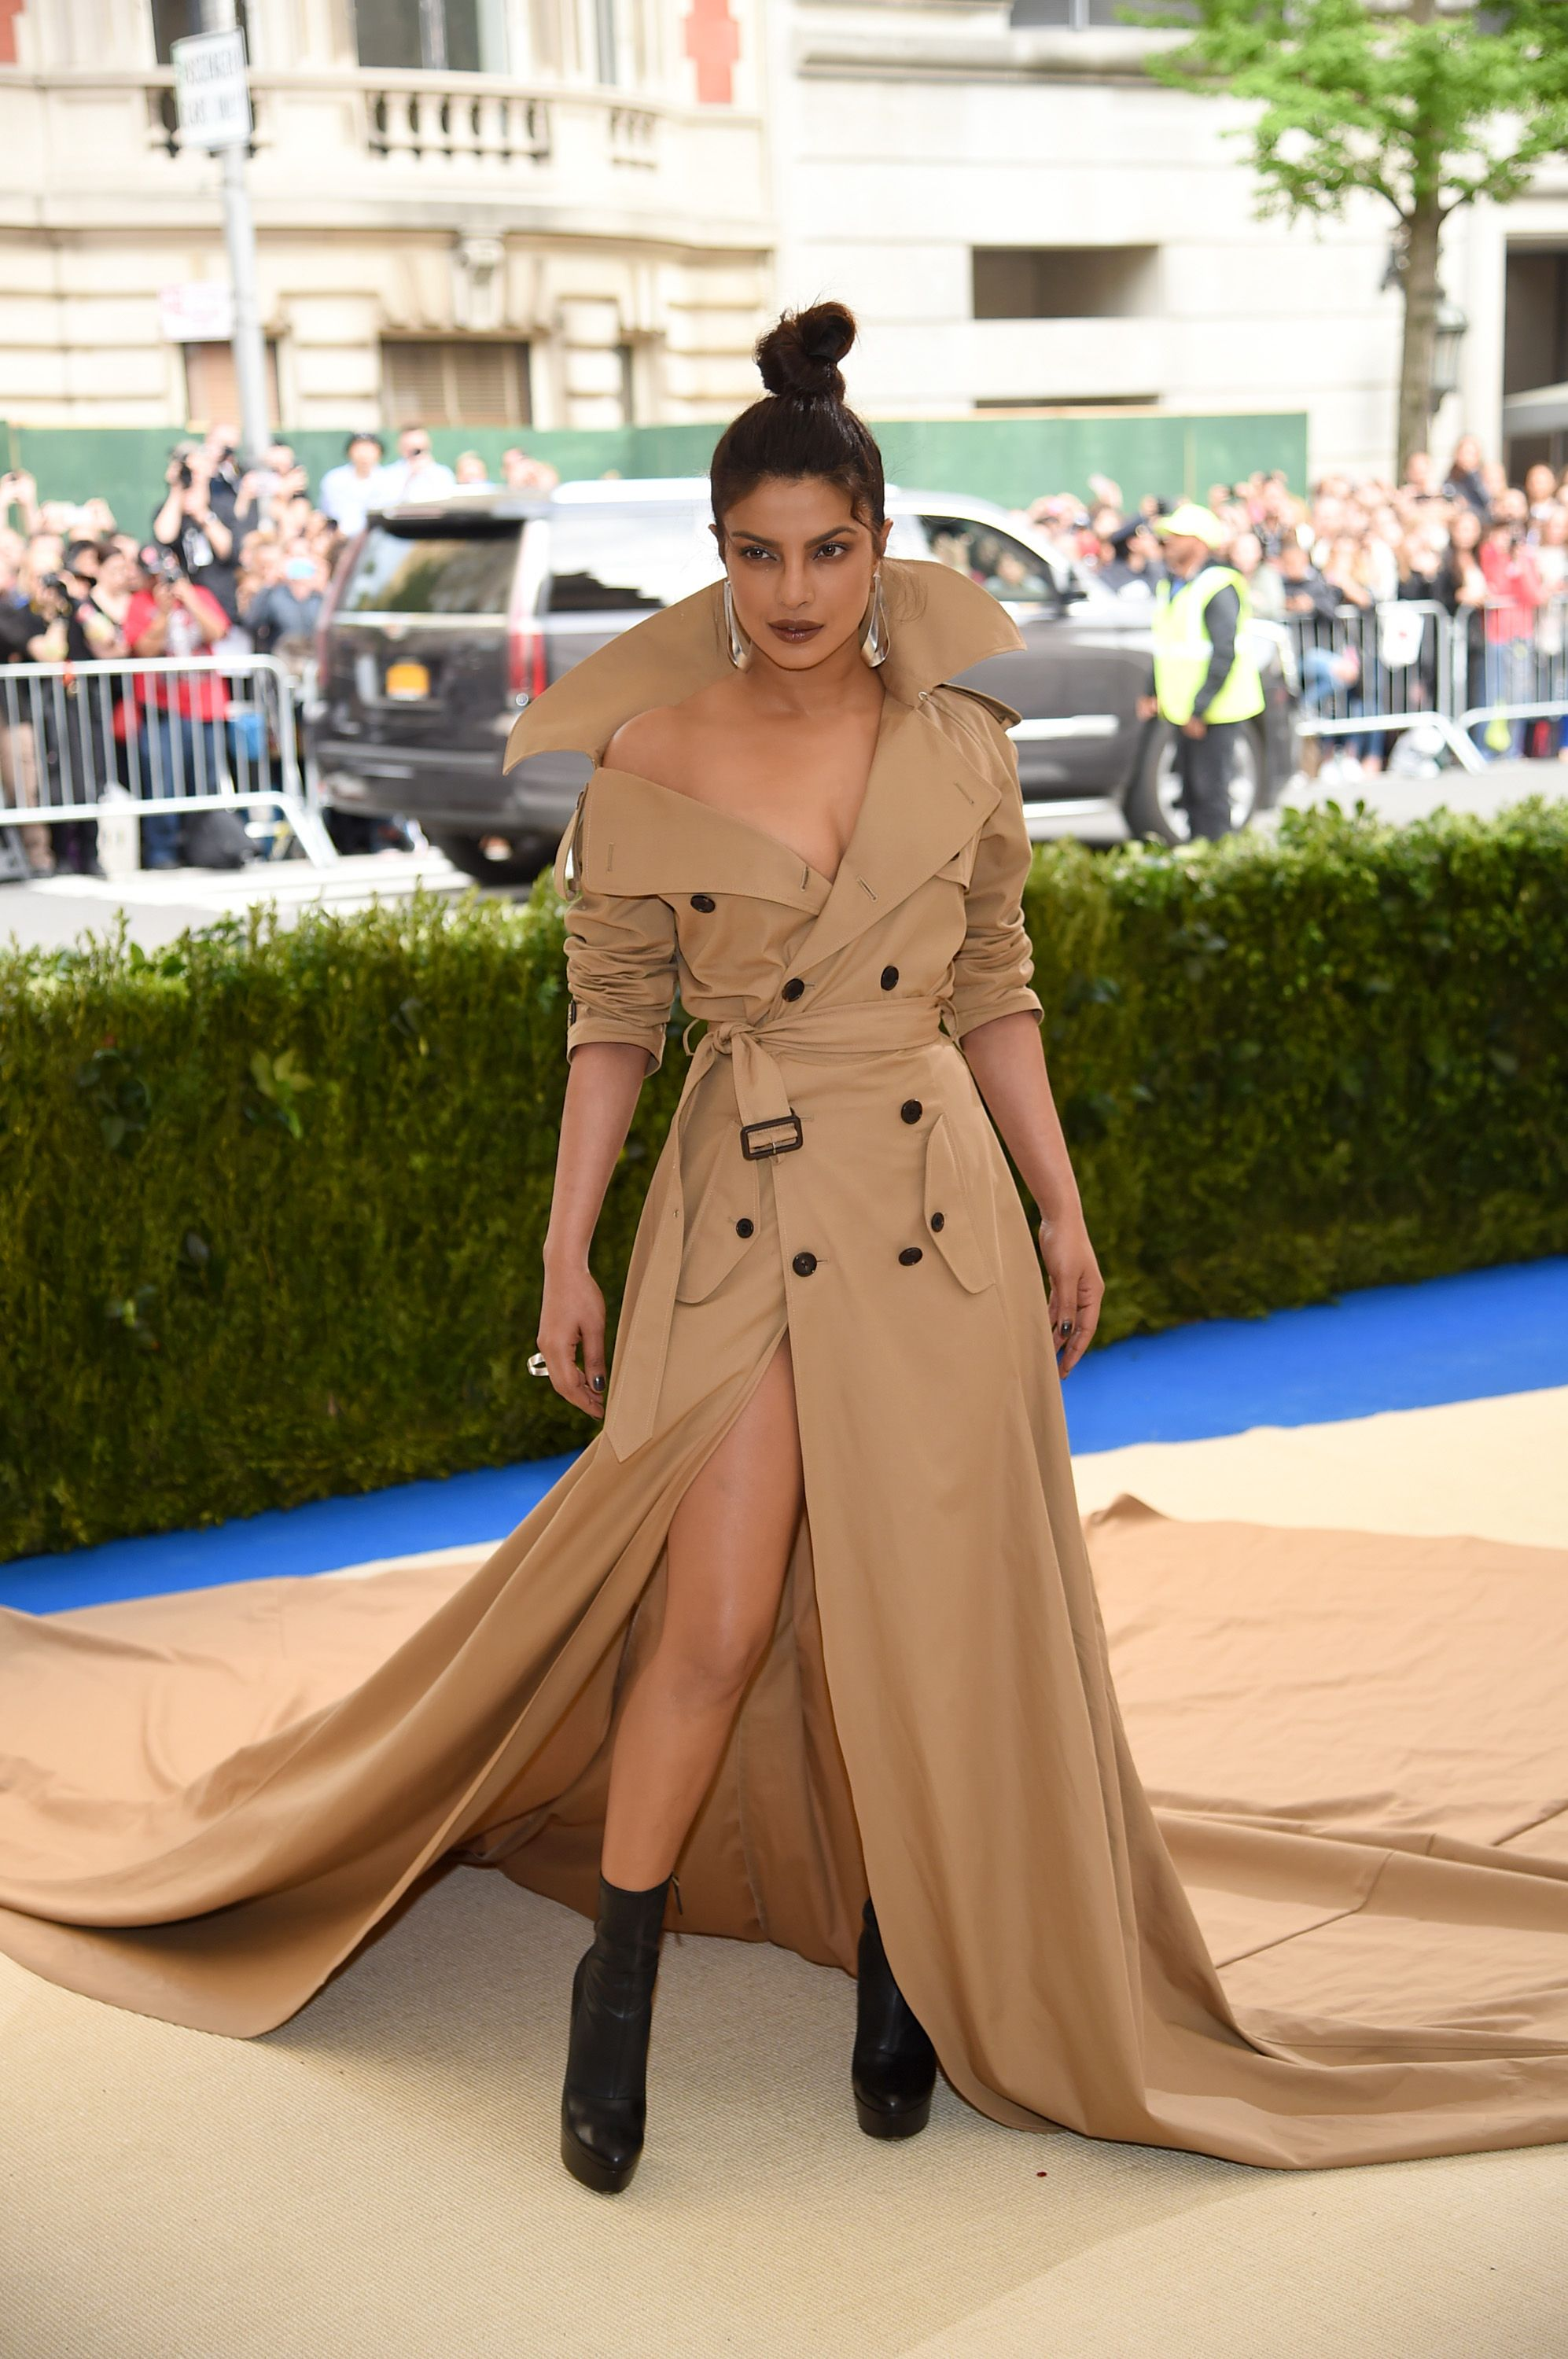 Met Gala 2017 Every Unforgettable Outfit From The Red Carpet Priyanka Chopra Red Carpet Priyanka Chopra Dress Red Carpet Fashion